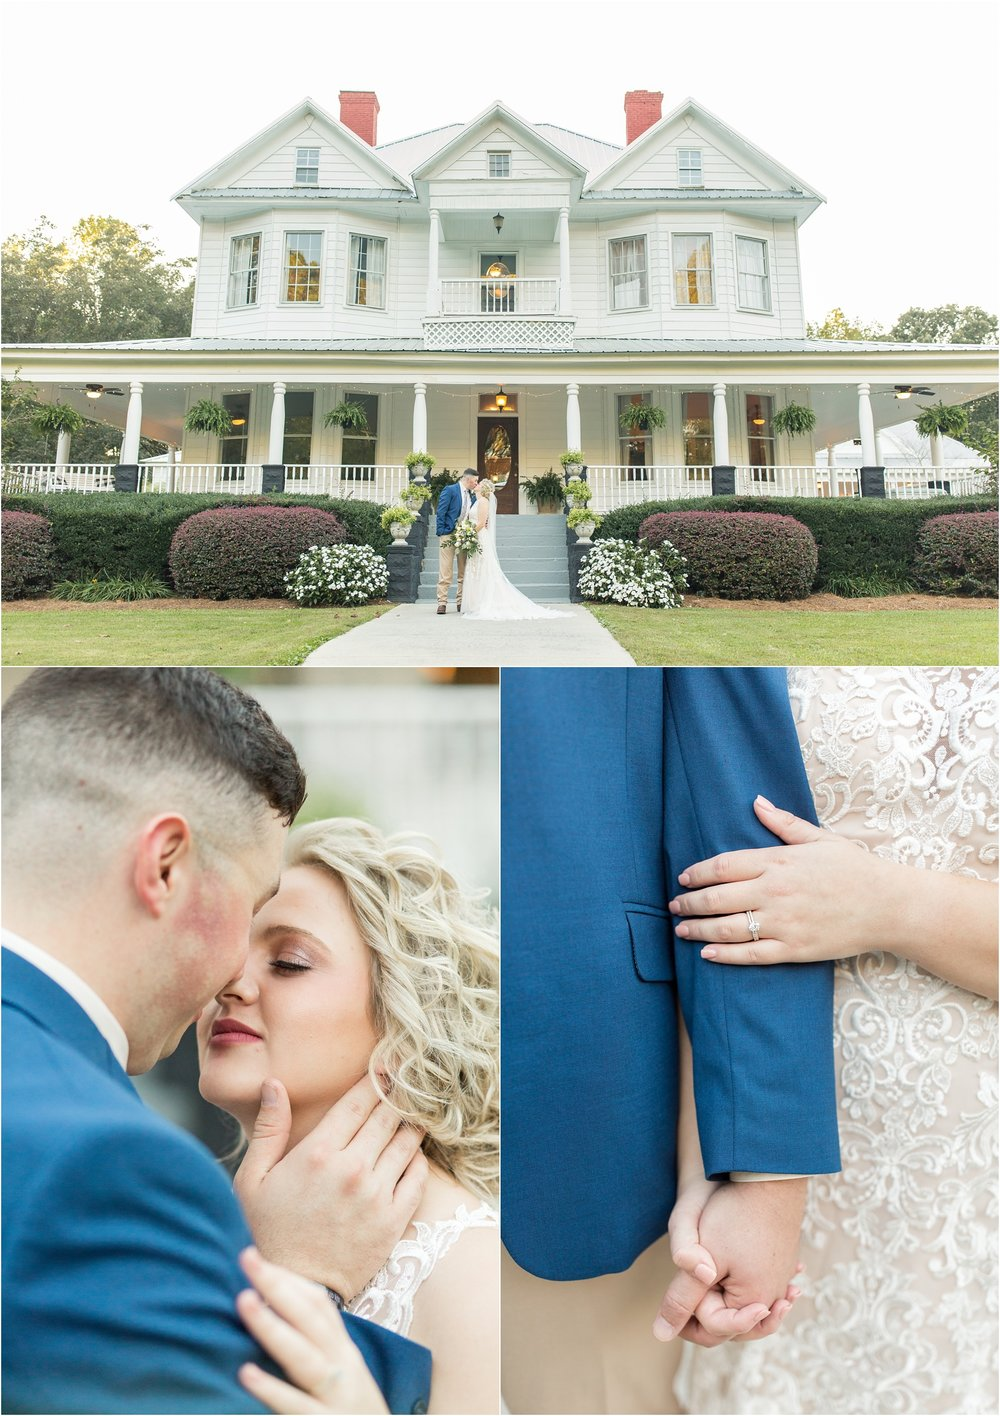 Savannah Eve Photography- Cannon-Gossett Wedding- Sneak Peek-100.jpg